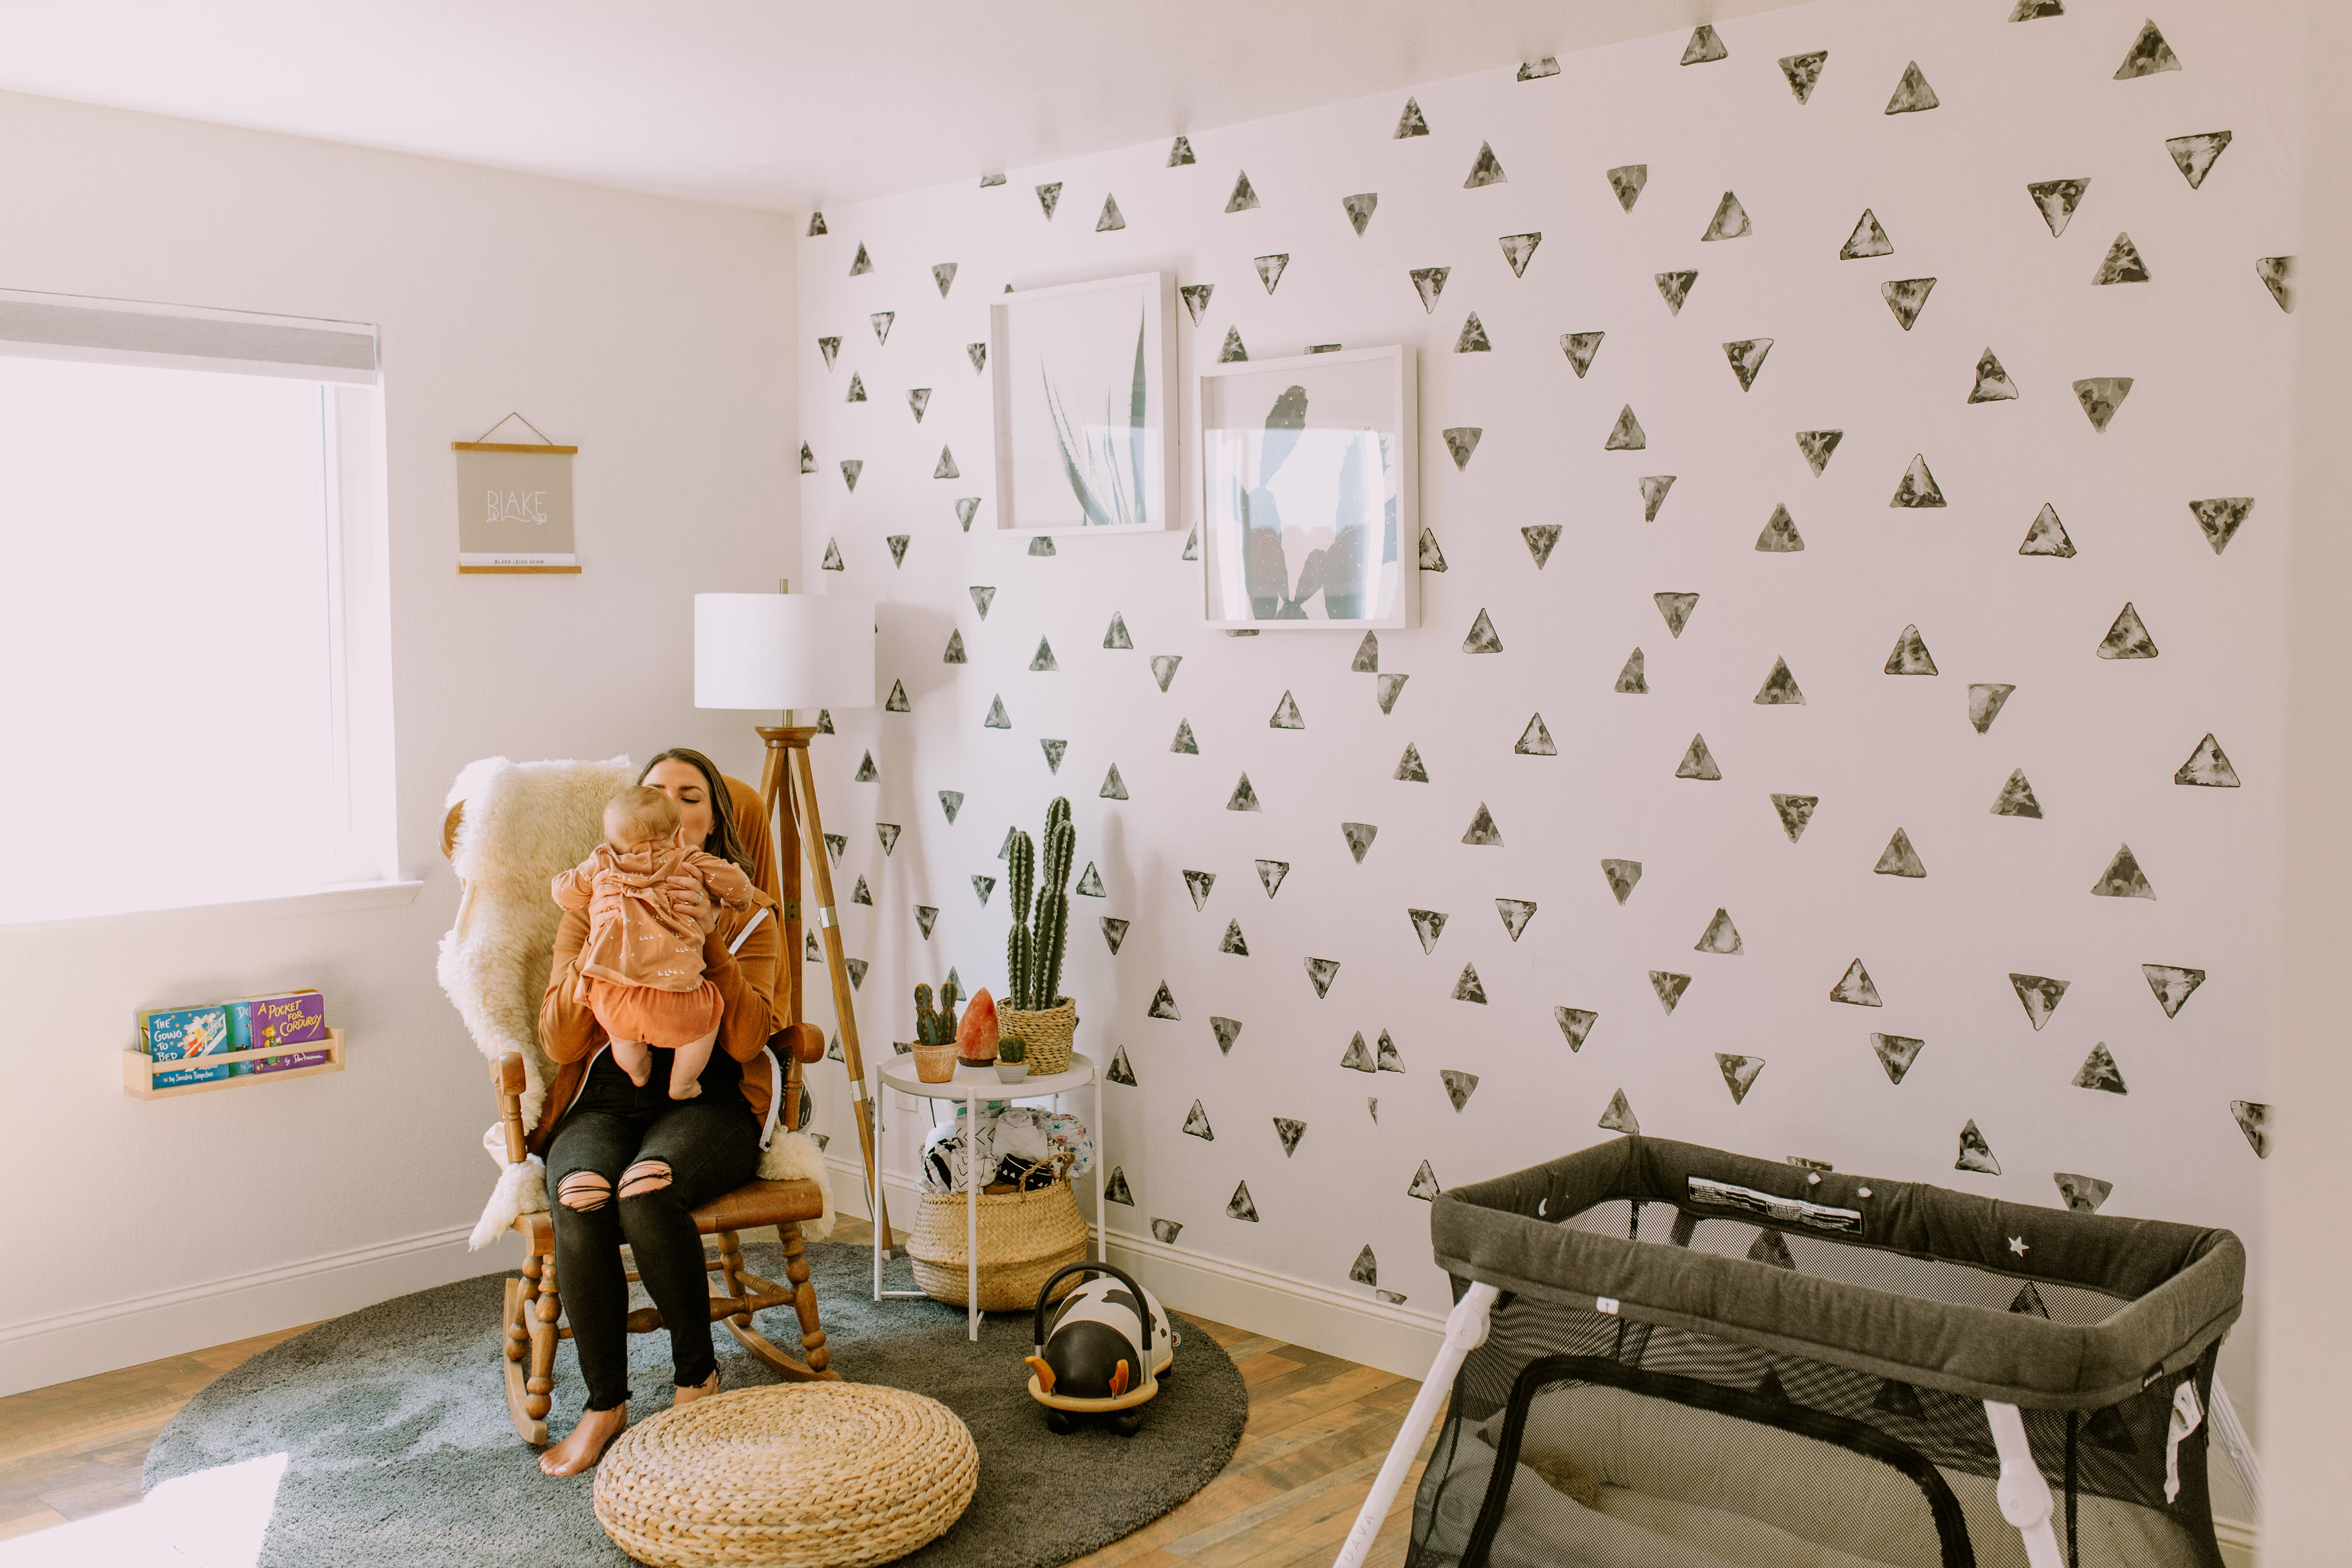 Rocky Mountain Decal Aztec Nursery made with Peel and Stick Wallpaper